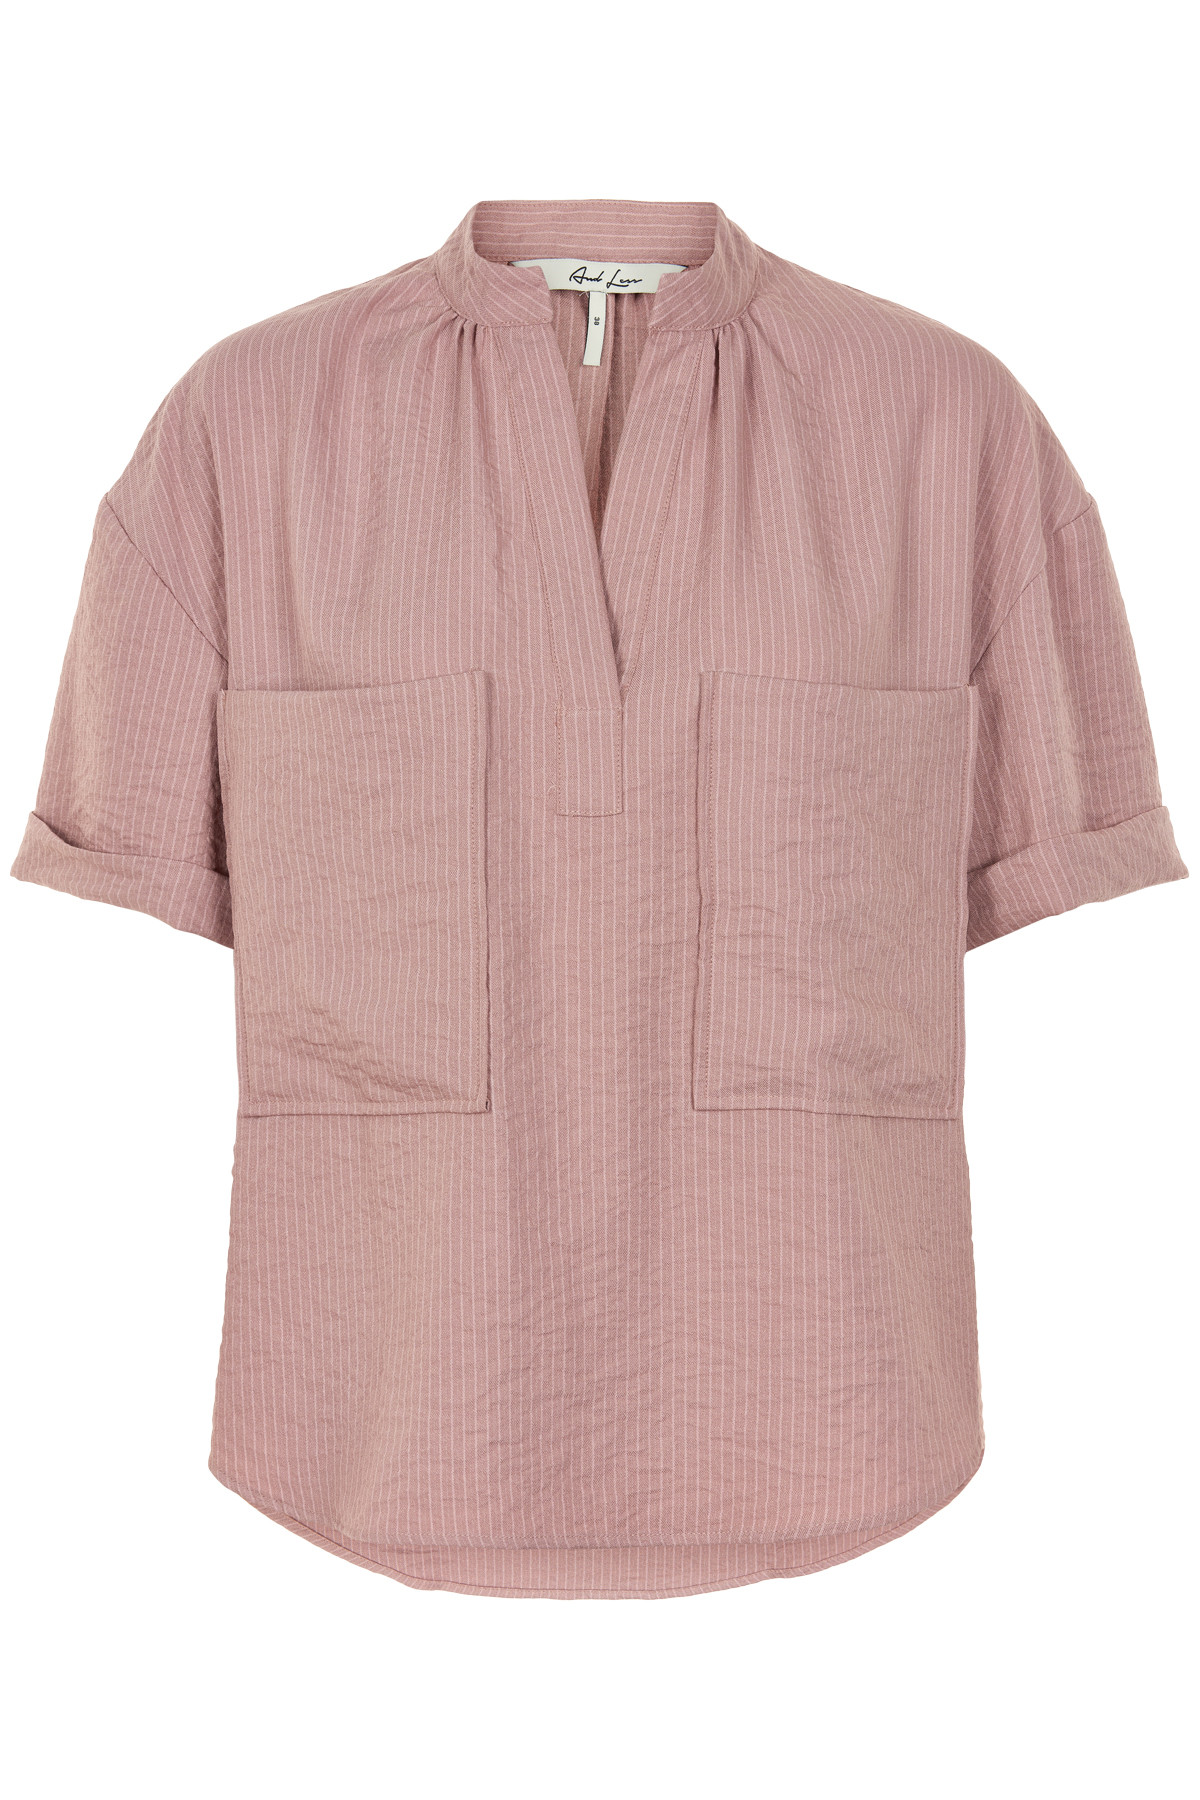 Image of   AND LESS ORIBELLA BLUSE 5219017 A (Ash Rose, 38)